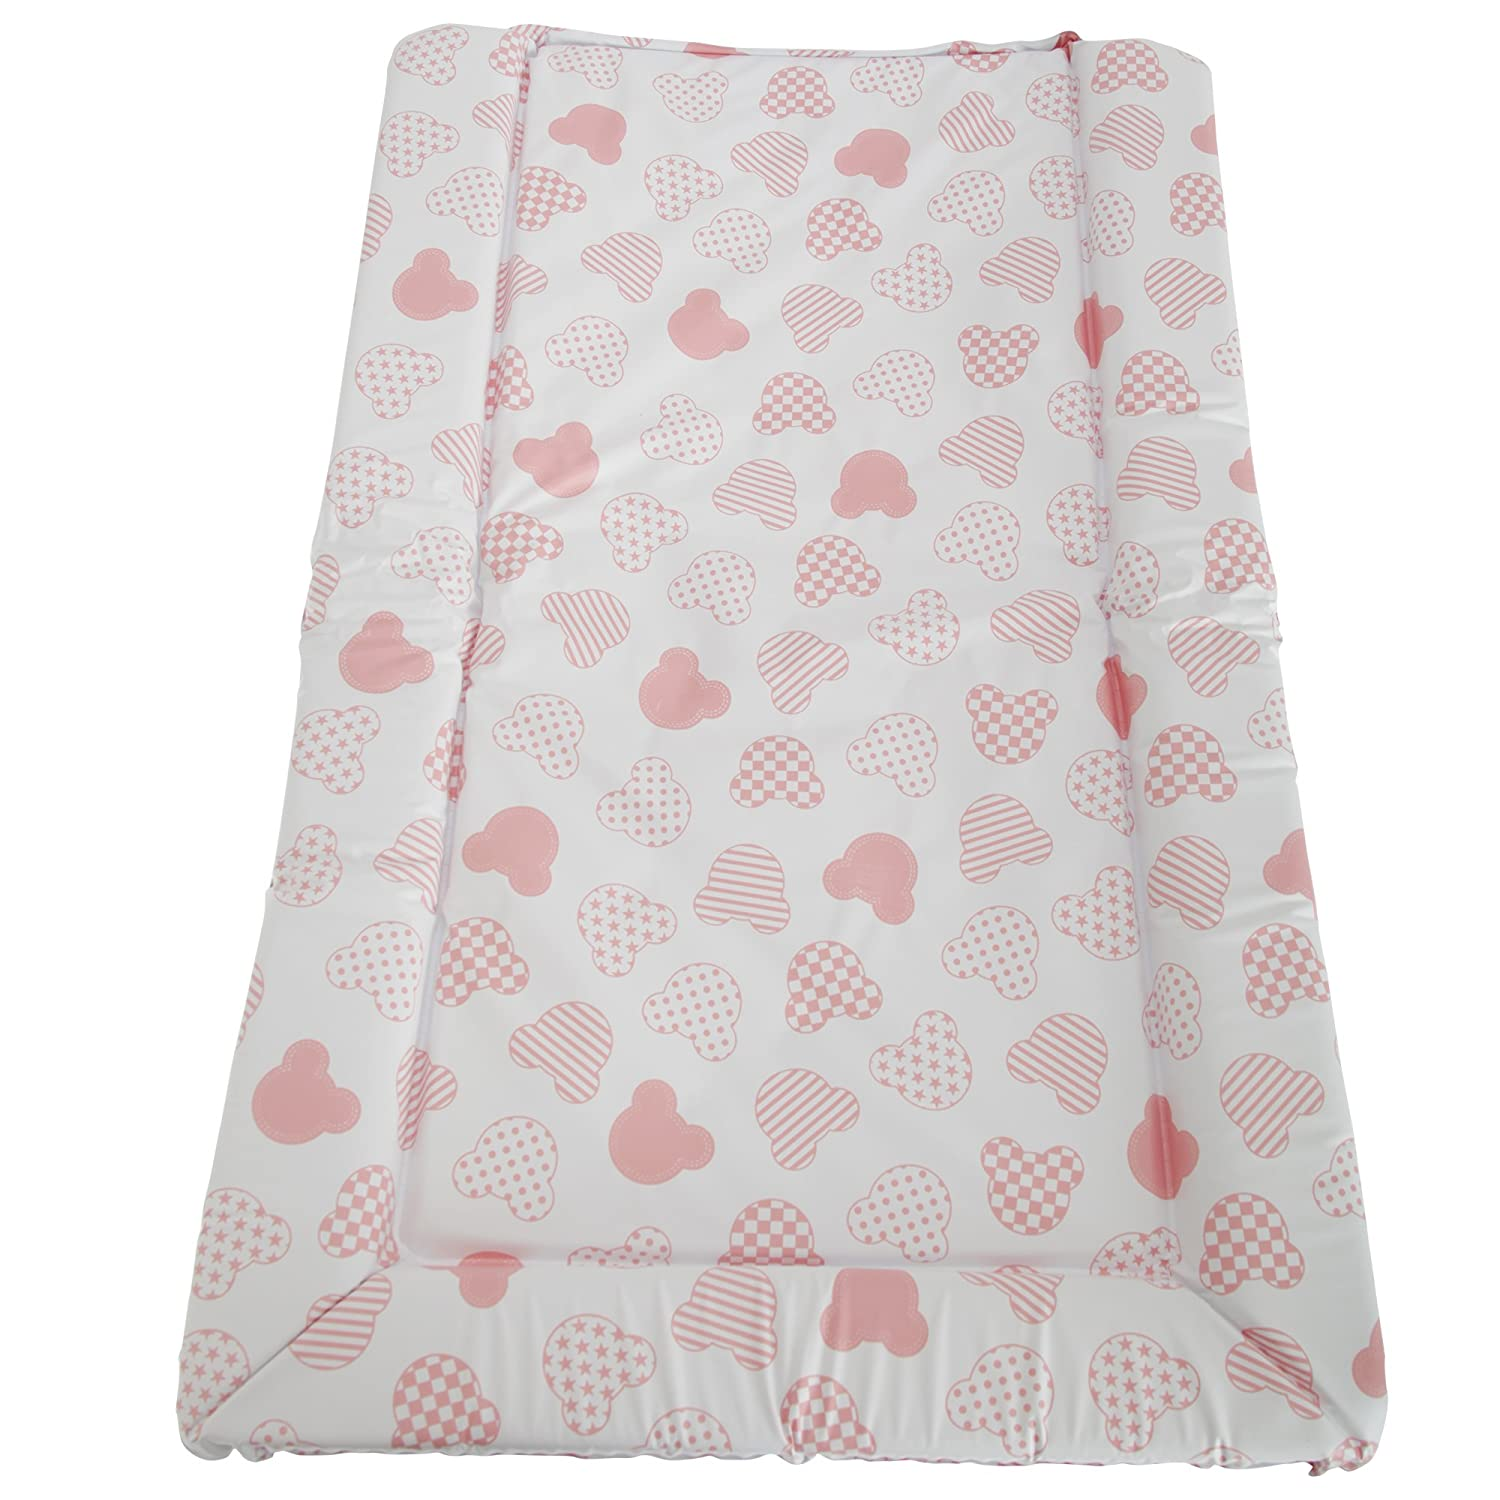 Sky Blue One Size Snuggle Baby Baby Boys//Girls Cute Bear Design Changing Mat